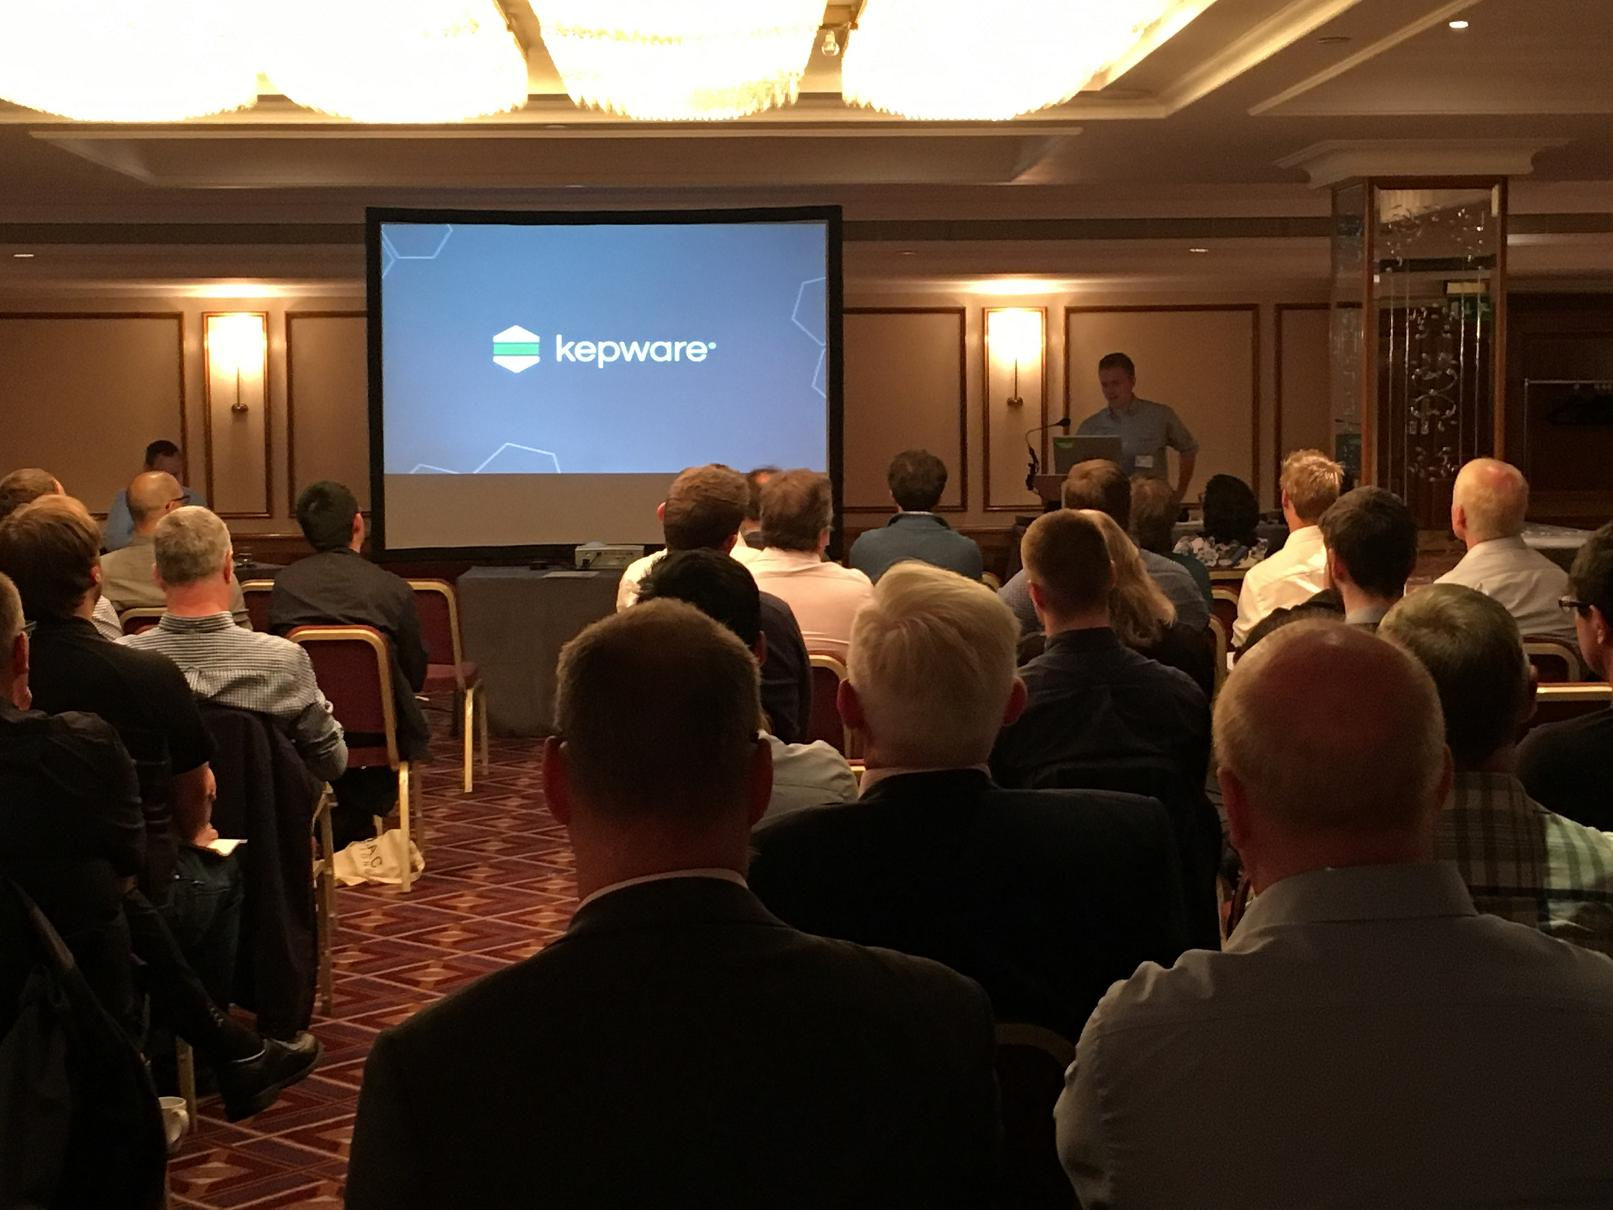 Kepware and MacSolutions co-host first KepwareOPC Discovery Day in the United Kingdom